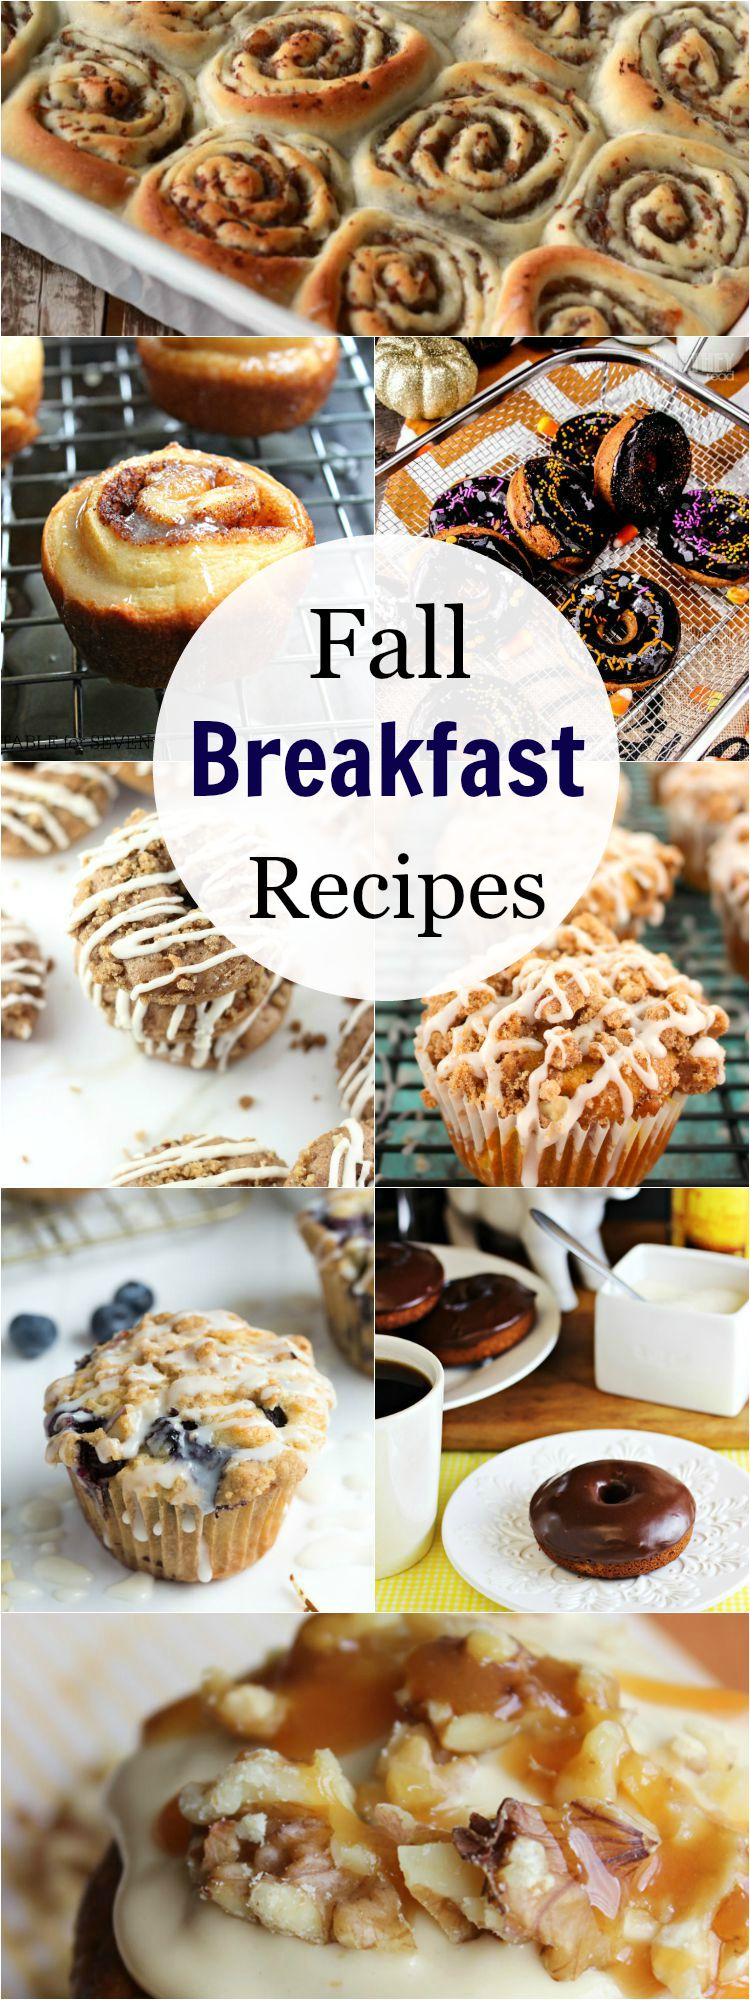 Fall Breakfast Recipes collected by The Melrose Family